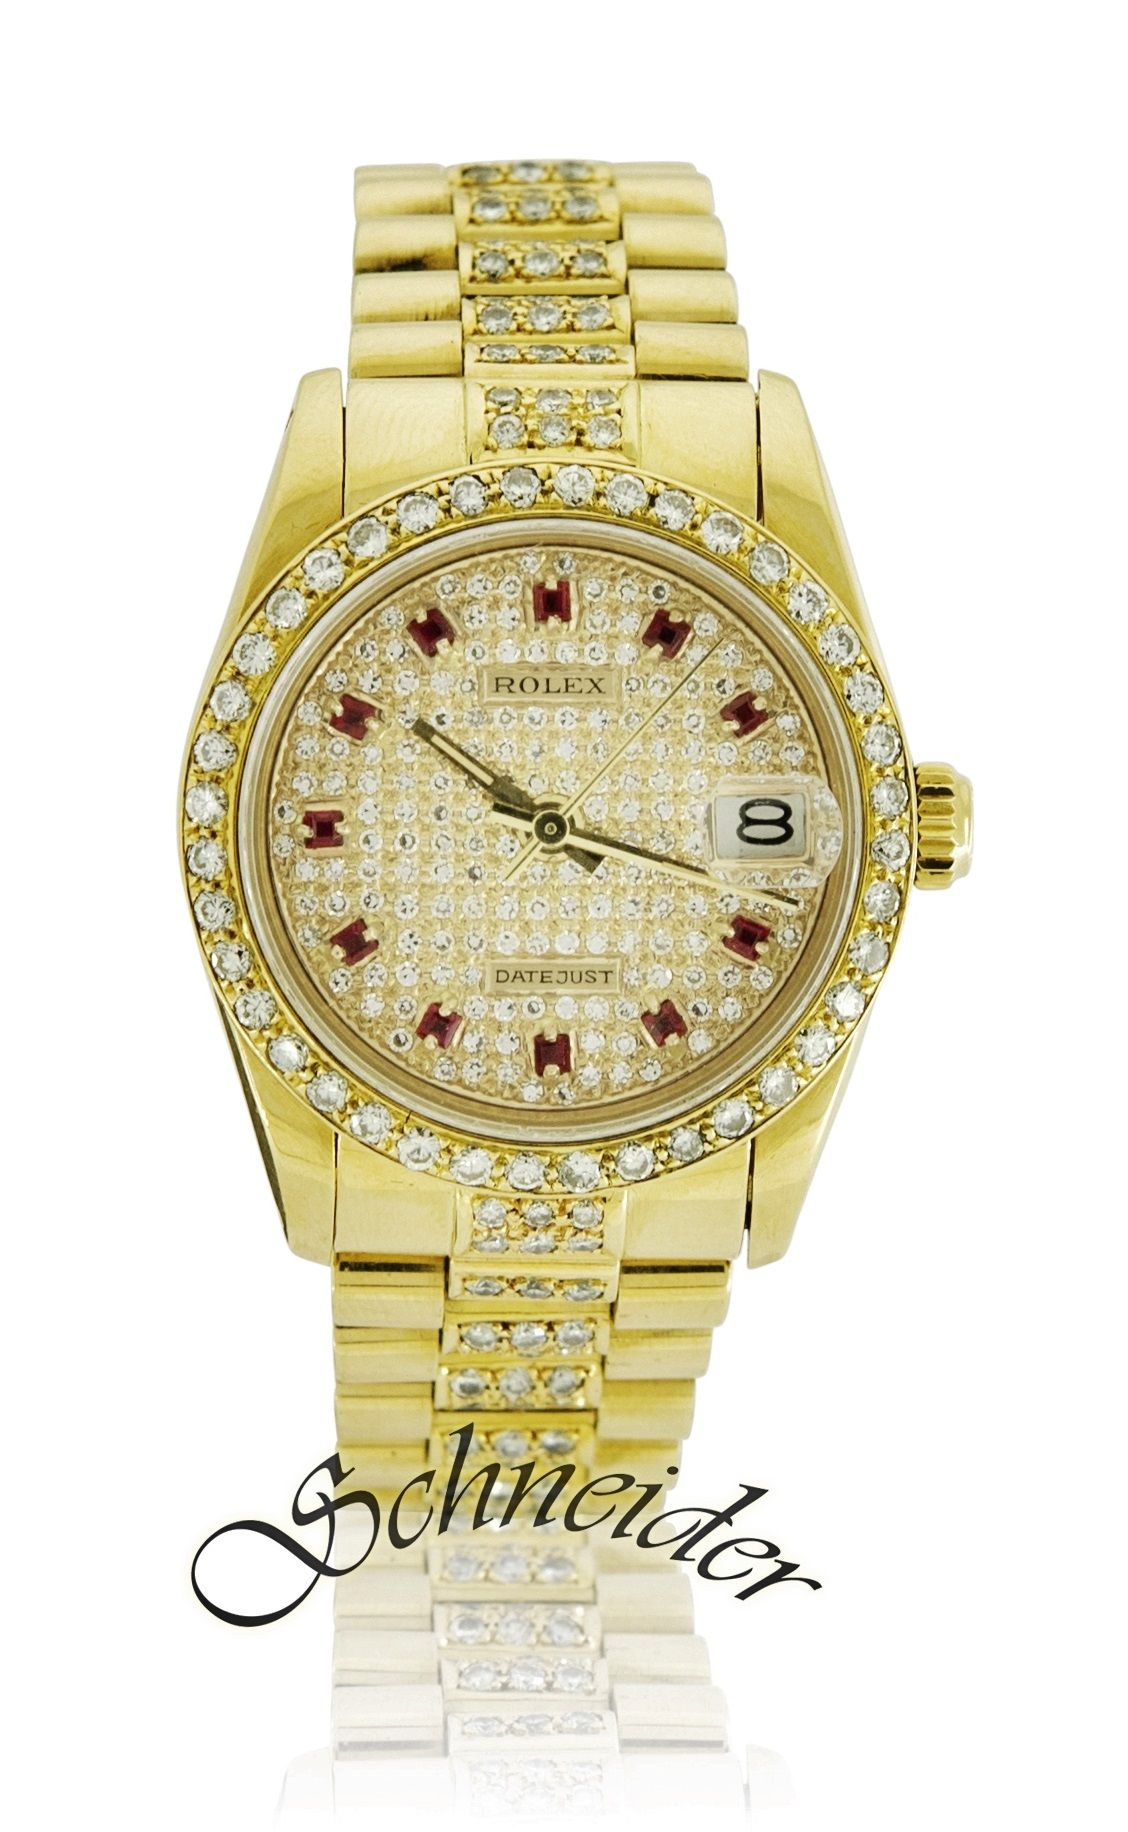 Pin By Schneider Jewelry Watches On Second Hand Watches Second Hand Watches Rolex Watches Hand Watch